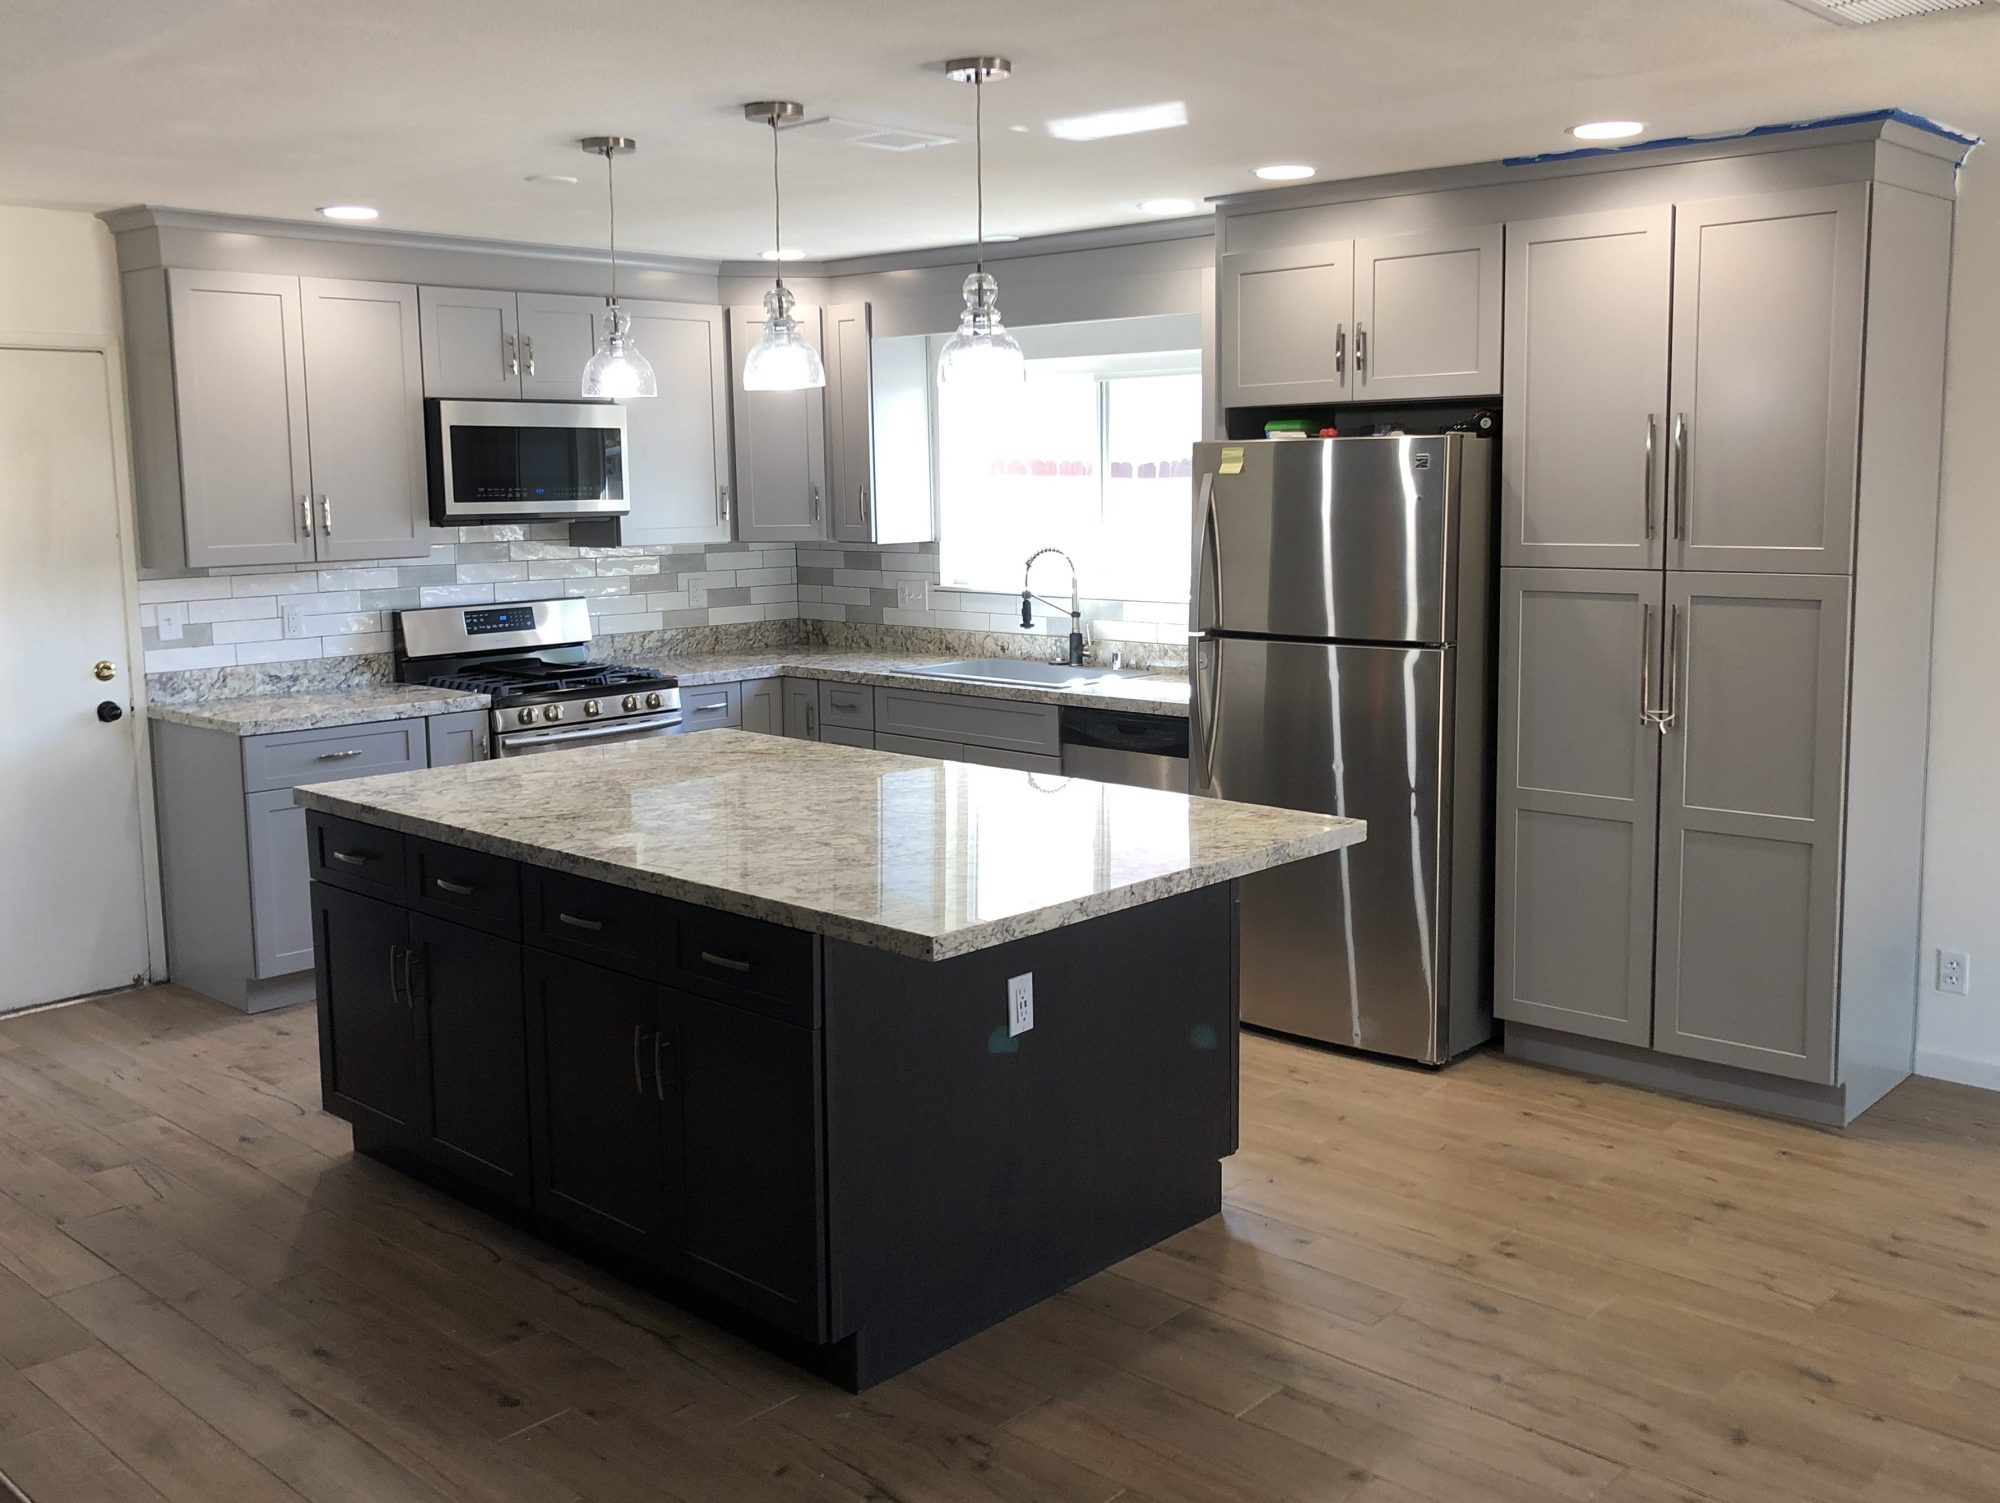 Kitchen Renovation Contractors Las Vegas